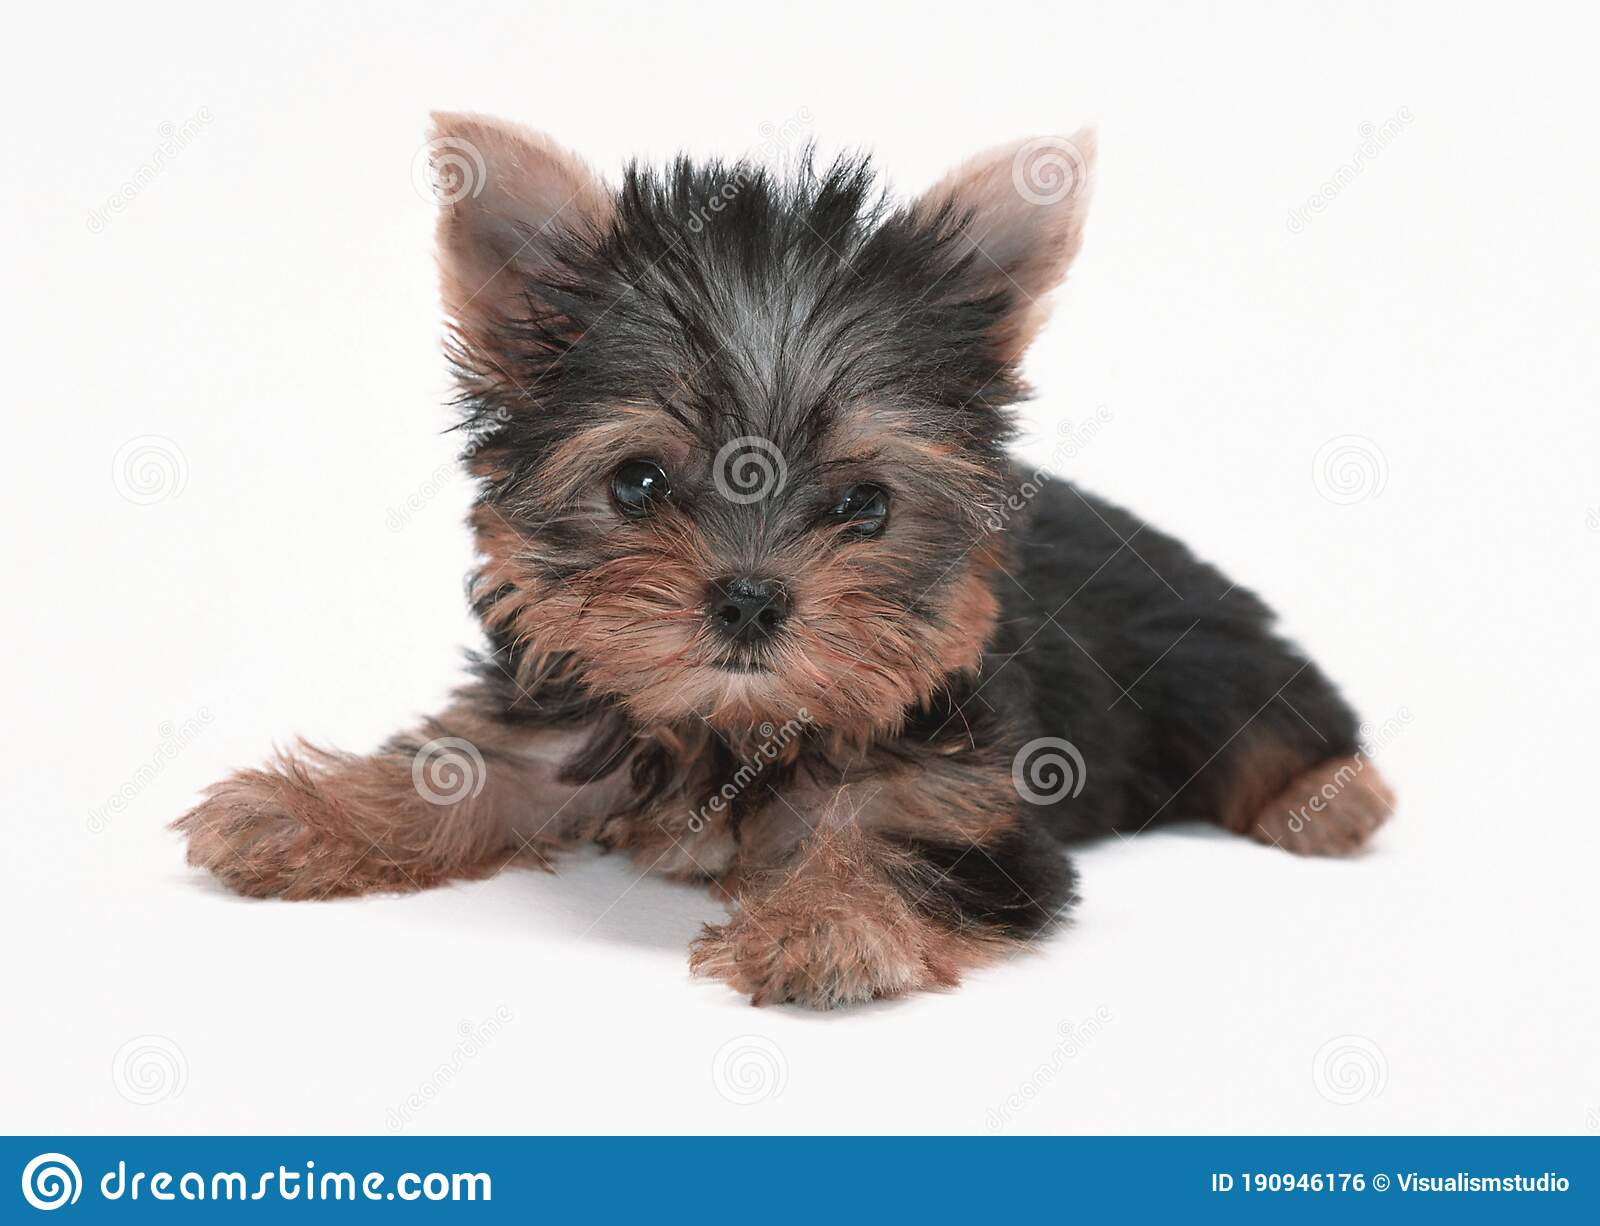 Black Dog Puppies Funny Smiling Puppy Dog A Paw And Cute Puppy On White Stock Photo Image Of Design Care 190946176